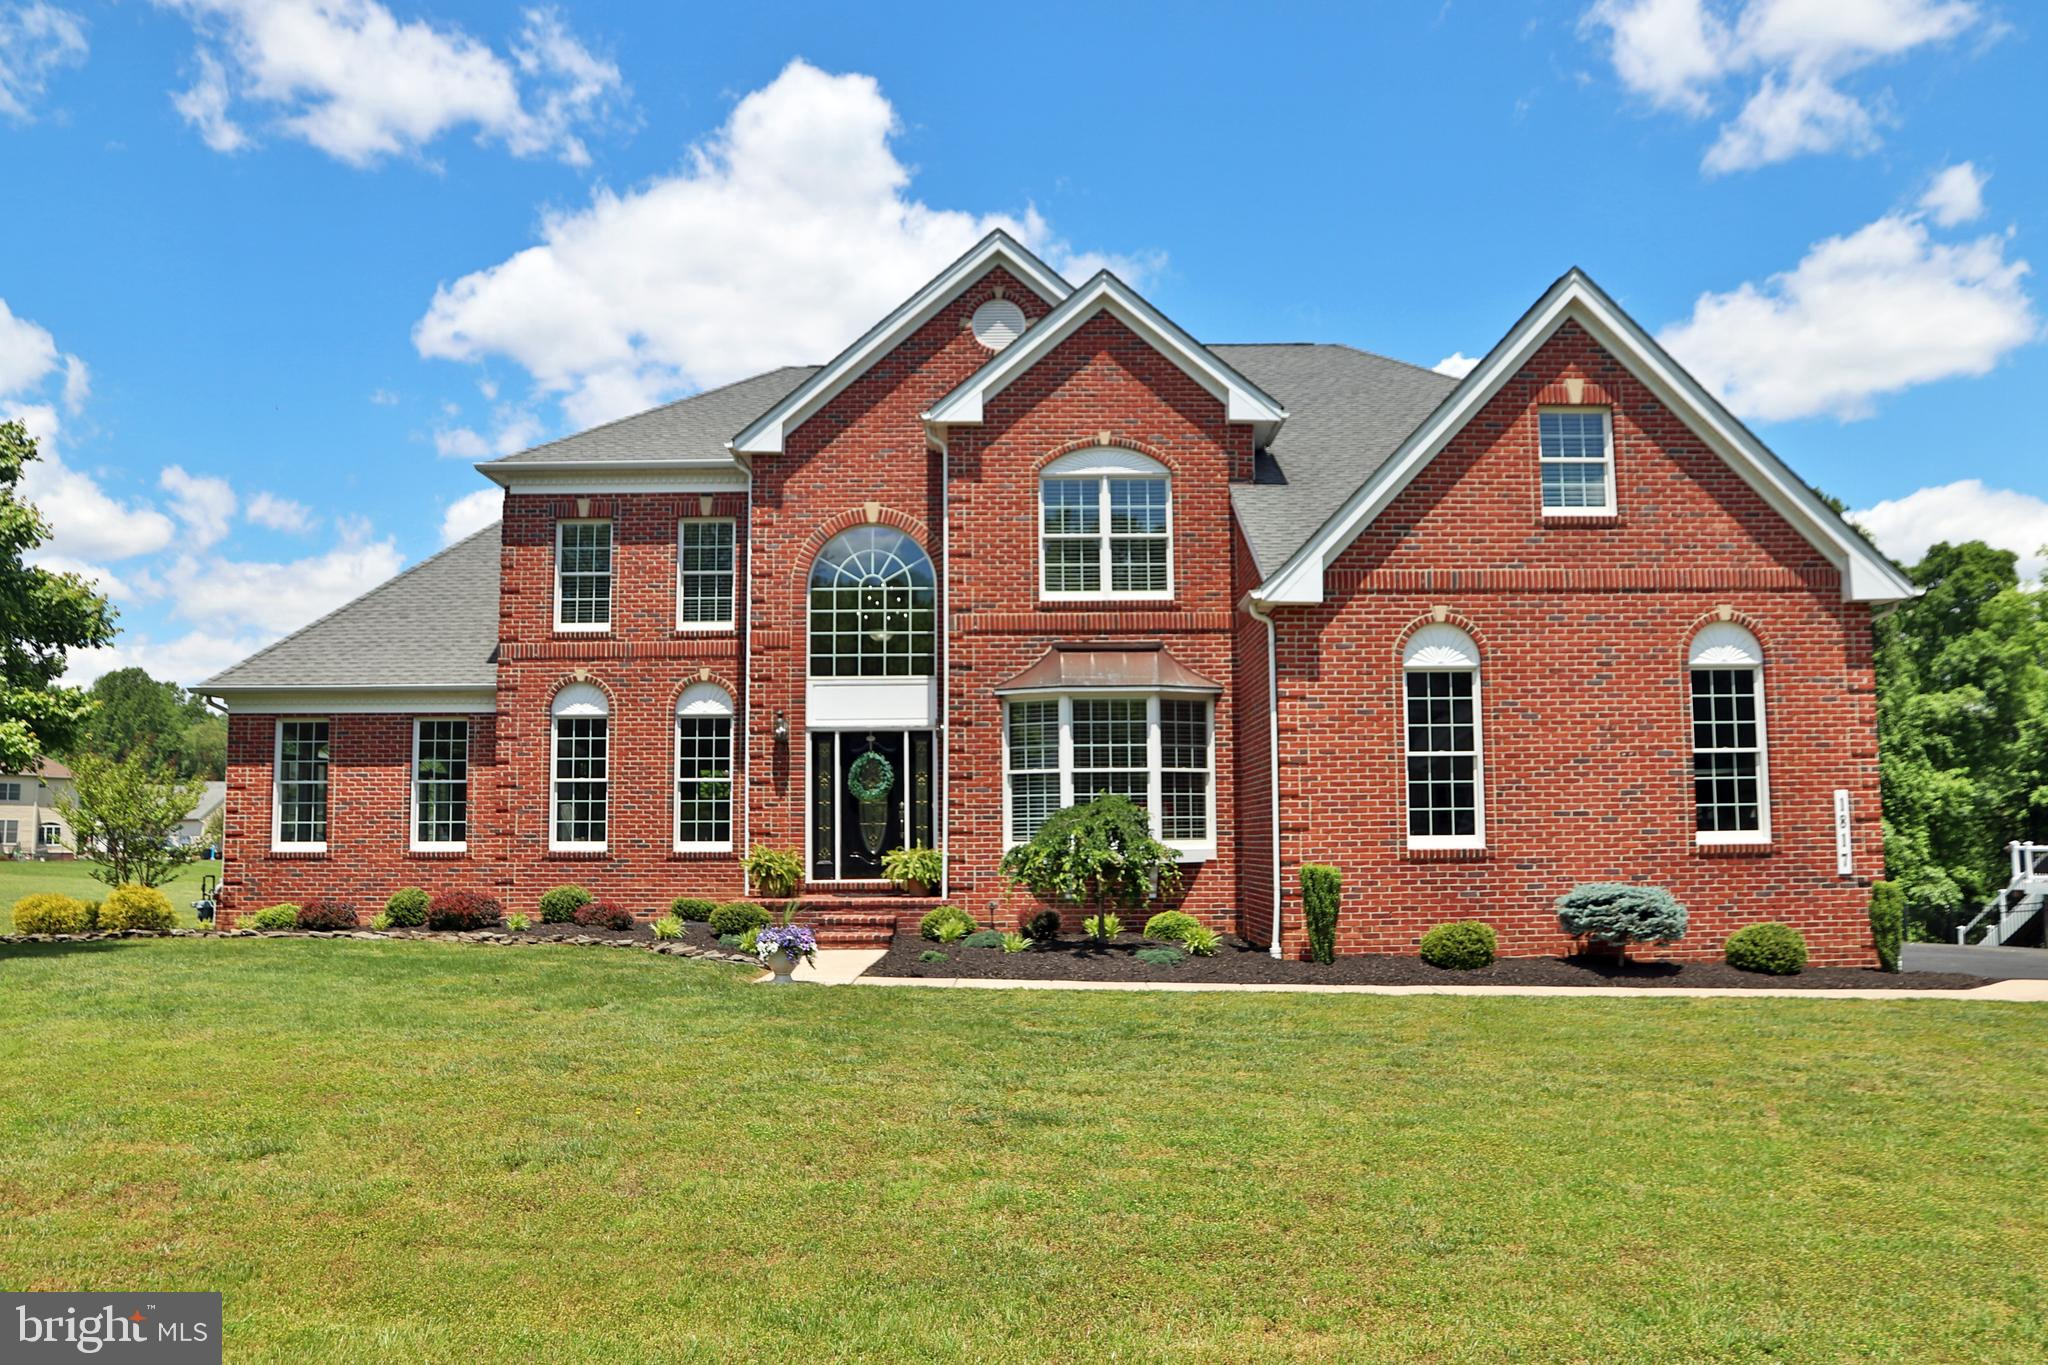 1817 Morning Brook Dr, Forest Hill, MD, 21050